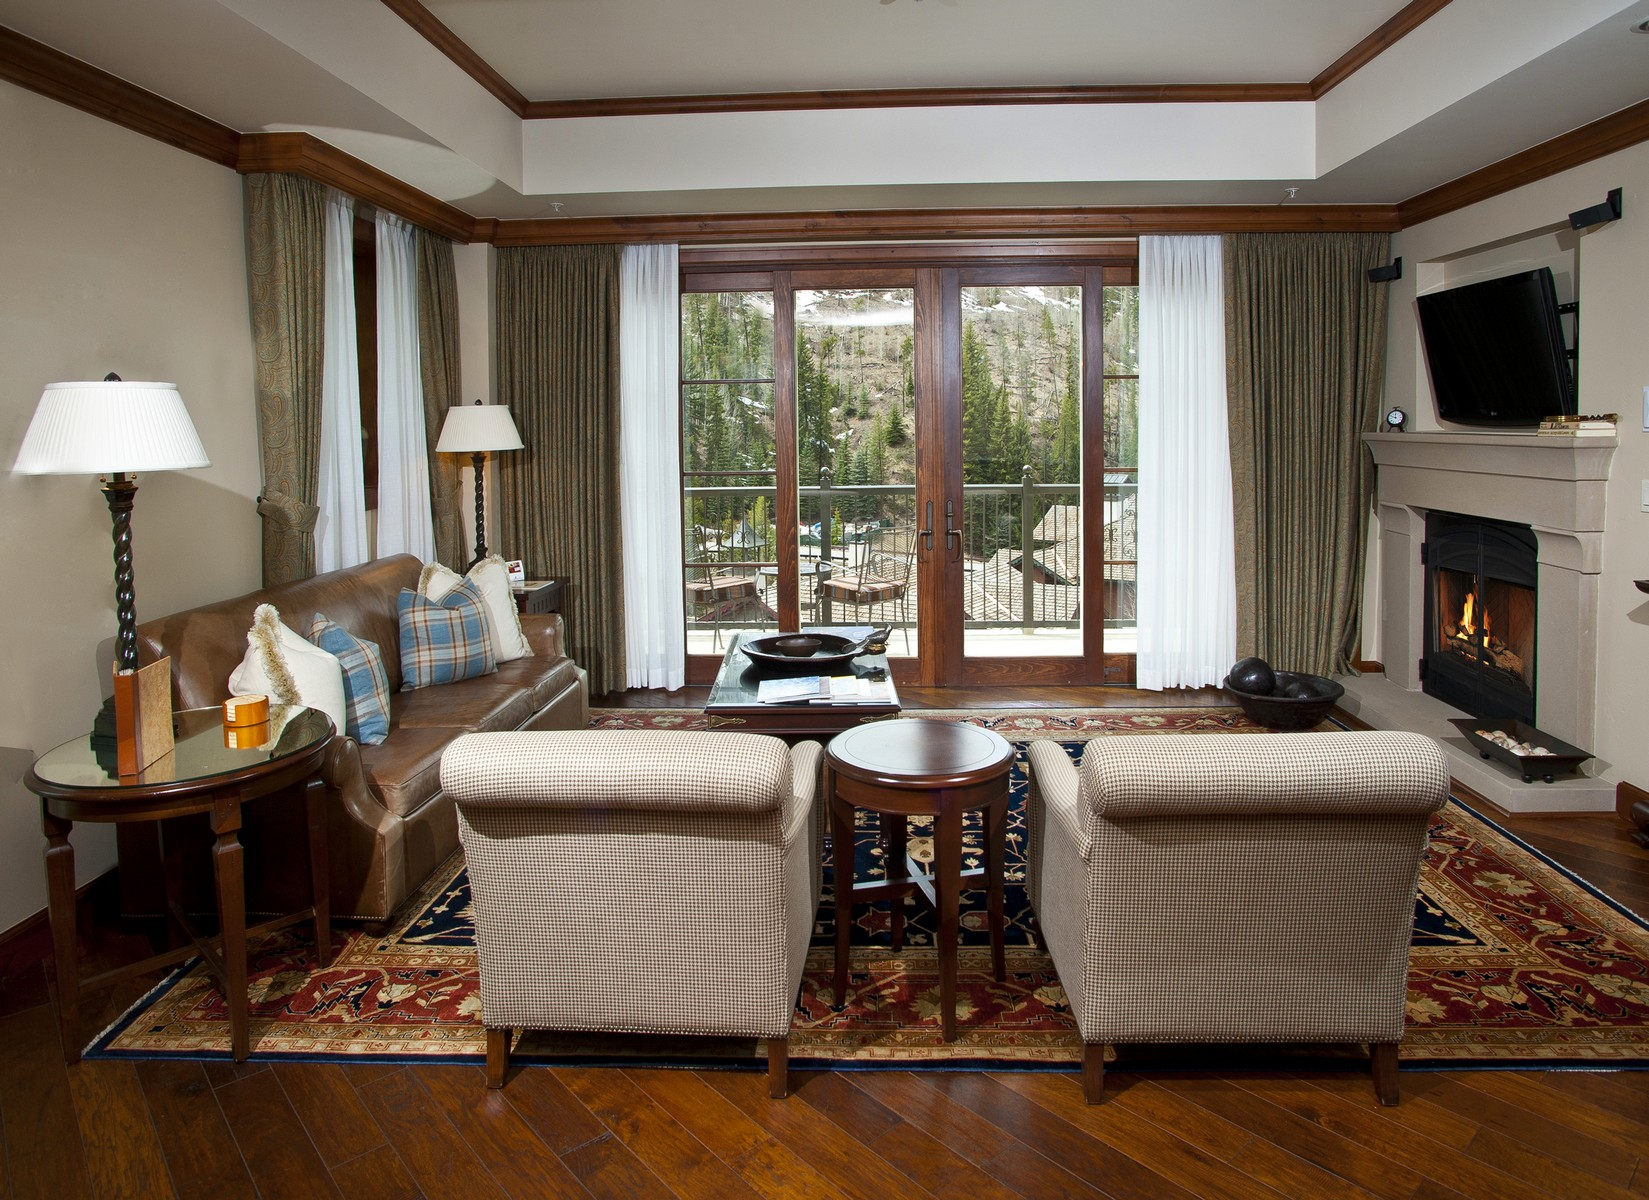 Fractional Ownership for Sale at The Ritz-Carlton Club, Vail 728 West Lionshead Cir 428 Vail, Colorado 81657 United States